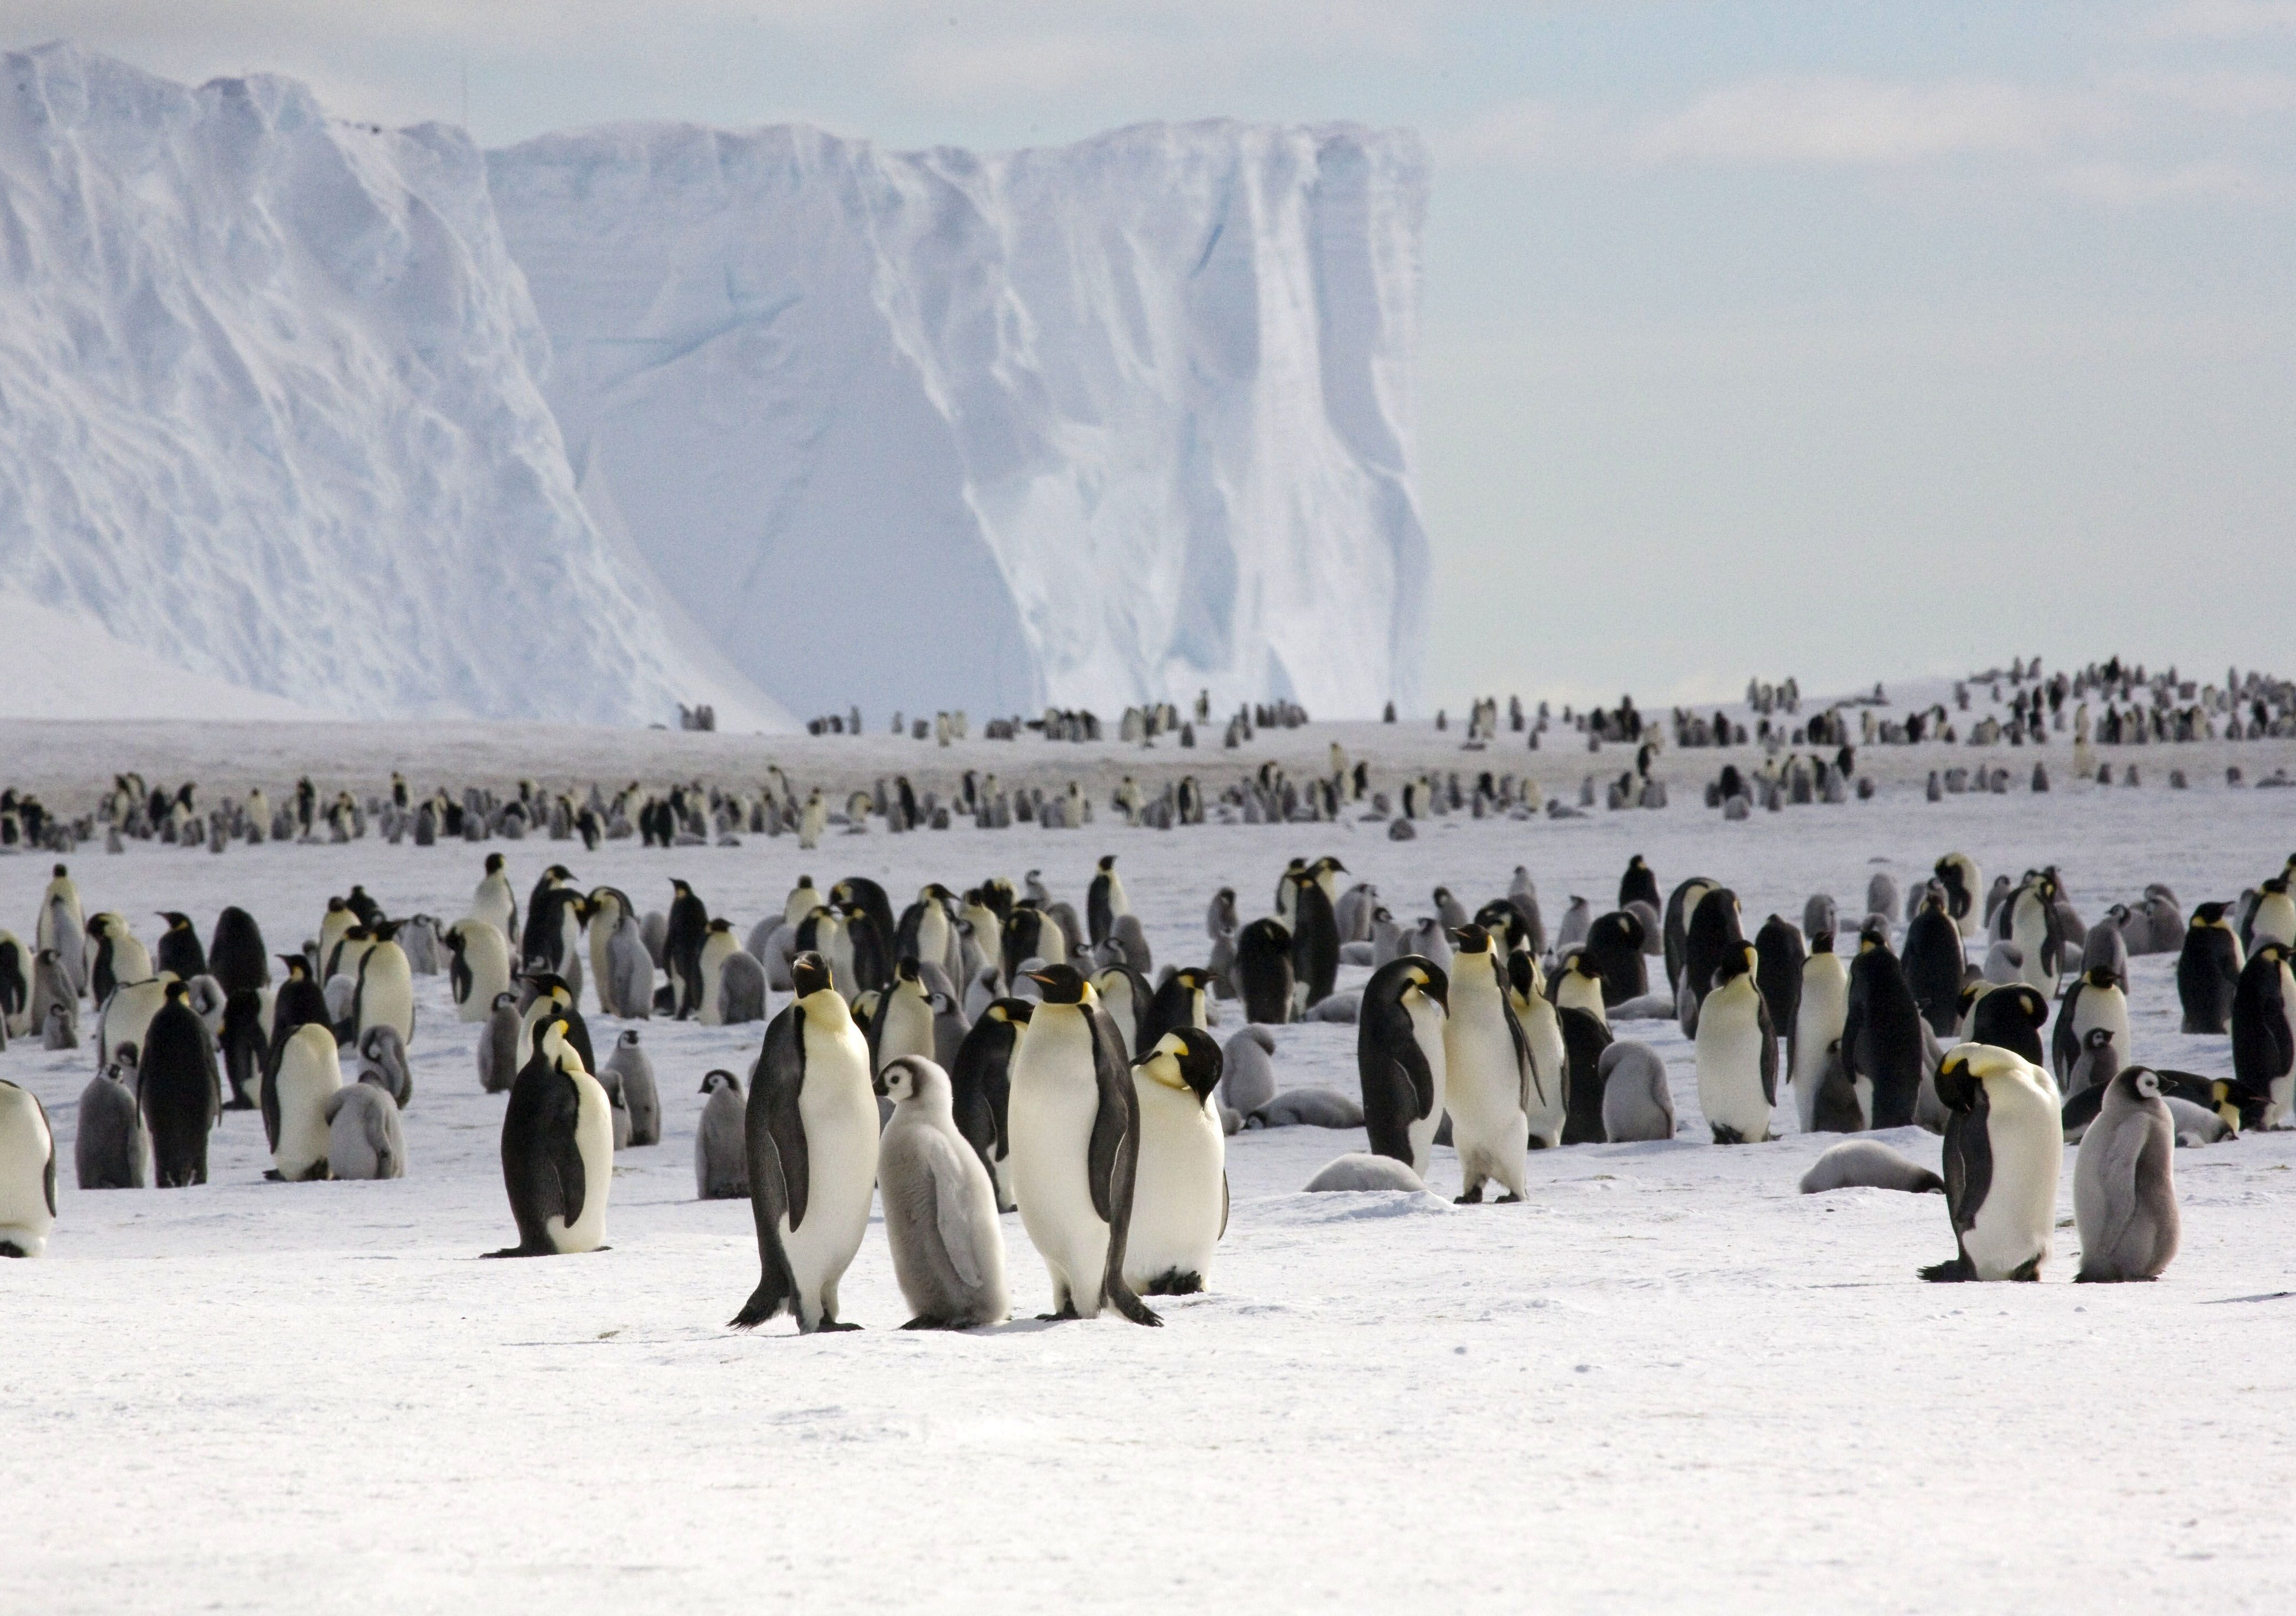 Mandatory Credit: Photo by British Antarctic Survey/Shutterstock (1695988h) Emperor penguin colony Scientists count Antarctica penguin population from space - Apr 2012 *Full story: http://www.rexfeatures.com/nanolink/g35u Scientists have discovered there are twice as many emperor penguins in Antarctica as previously thought after counting them from space. The team, including members of the British Antarctic Survey, used very high resolution satellite images to estimate the number of penguins at each colony in the first full census of a species from space. They were able to identify the penguins in the pictures as their black and white plumage clearly stood out against the ice and snow. The scientists were able to analyse 44 emperor penguin colonies, with seven previously unknown. They counted 595,000 birds, almost double the previous estimates of 270,000 to 350,000 birds. Emperor penguins breed in areas that are very difficult to study because they are remote and often in accessible with temperatures as low as -50C.